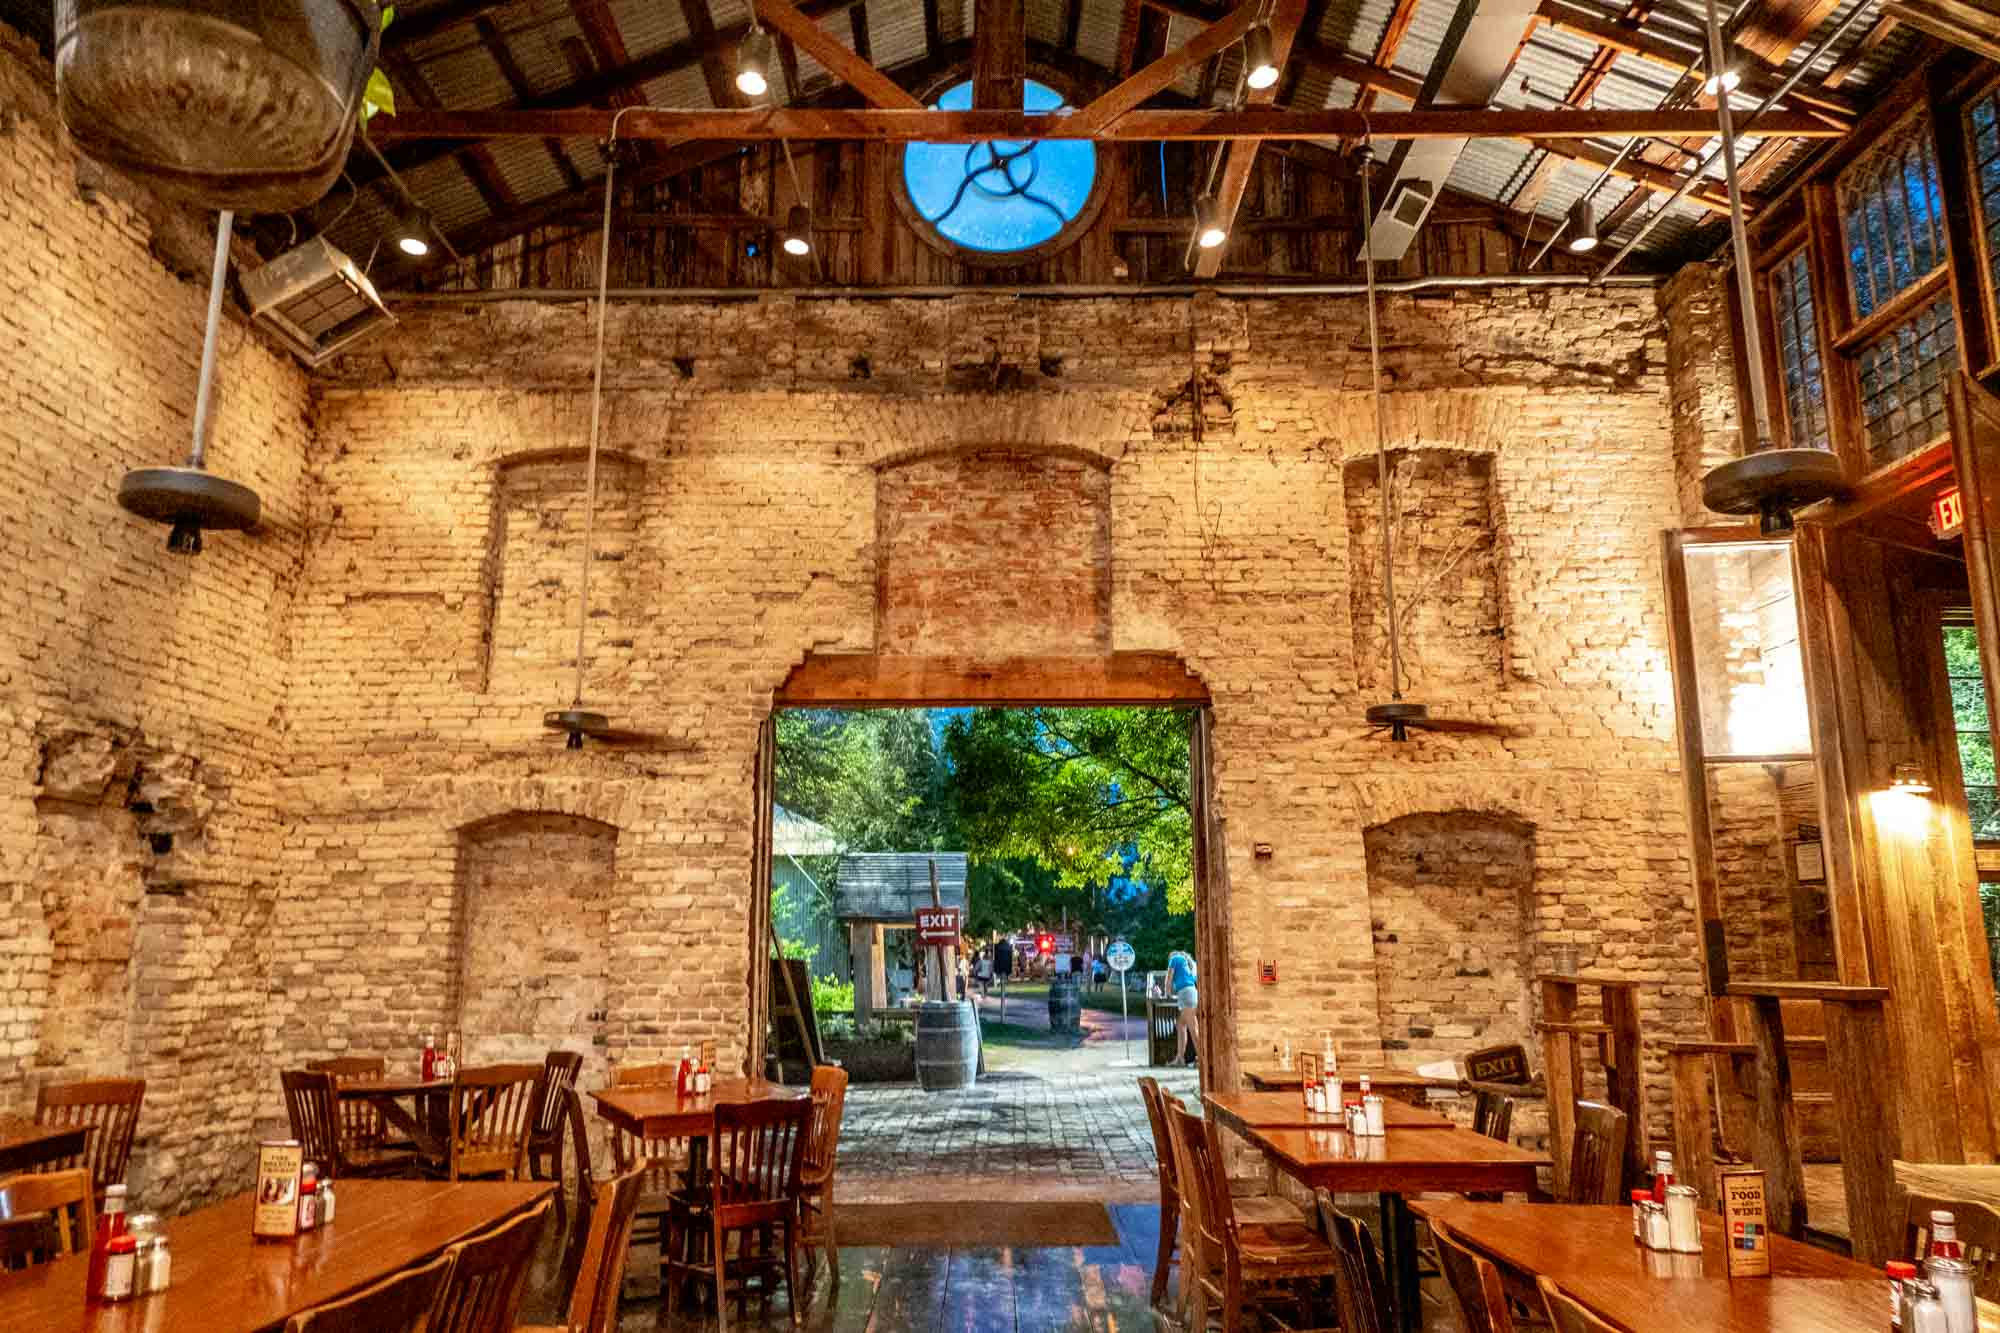 Inside a room with white brick walls filled with restaurant tables and chairs